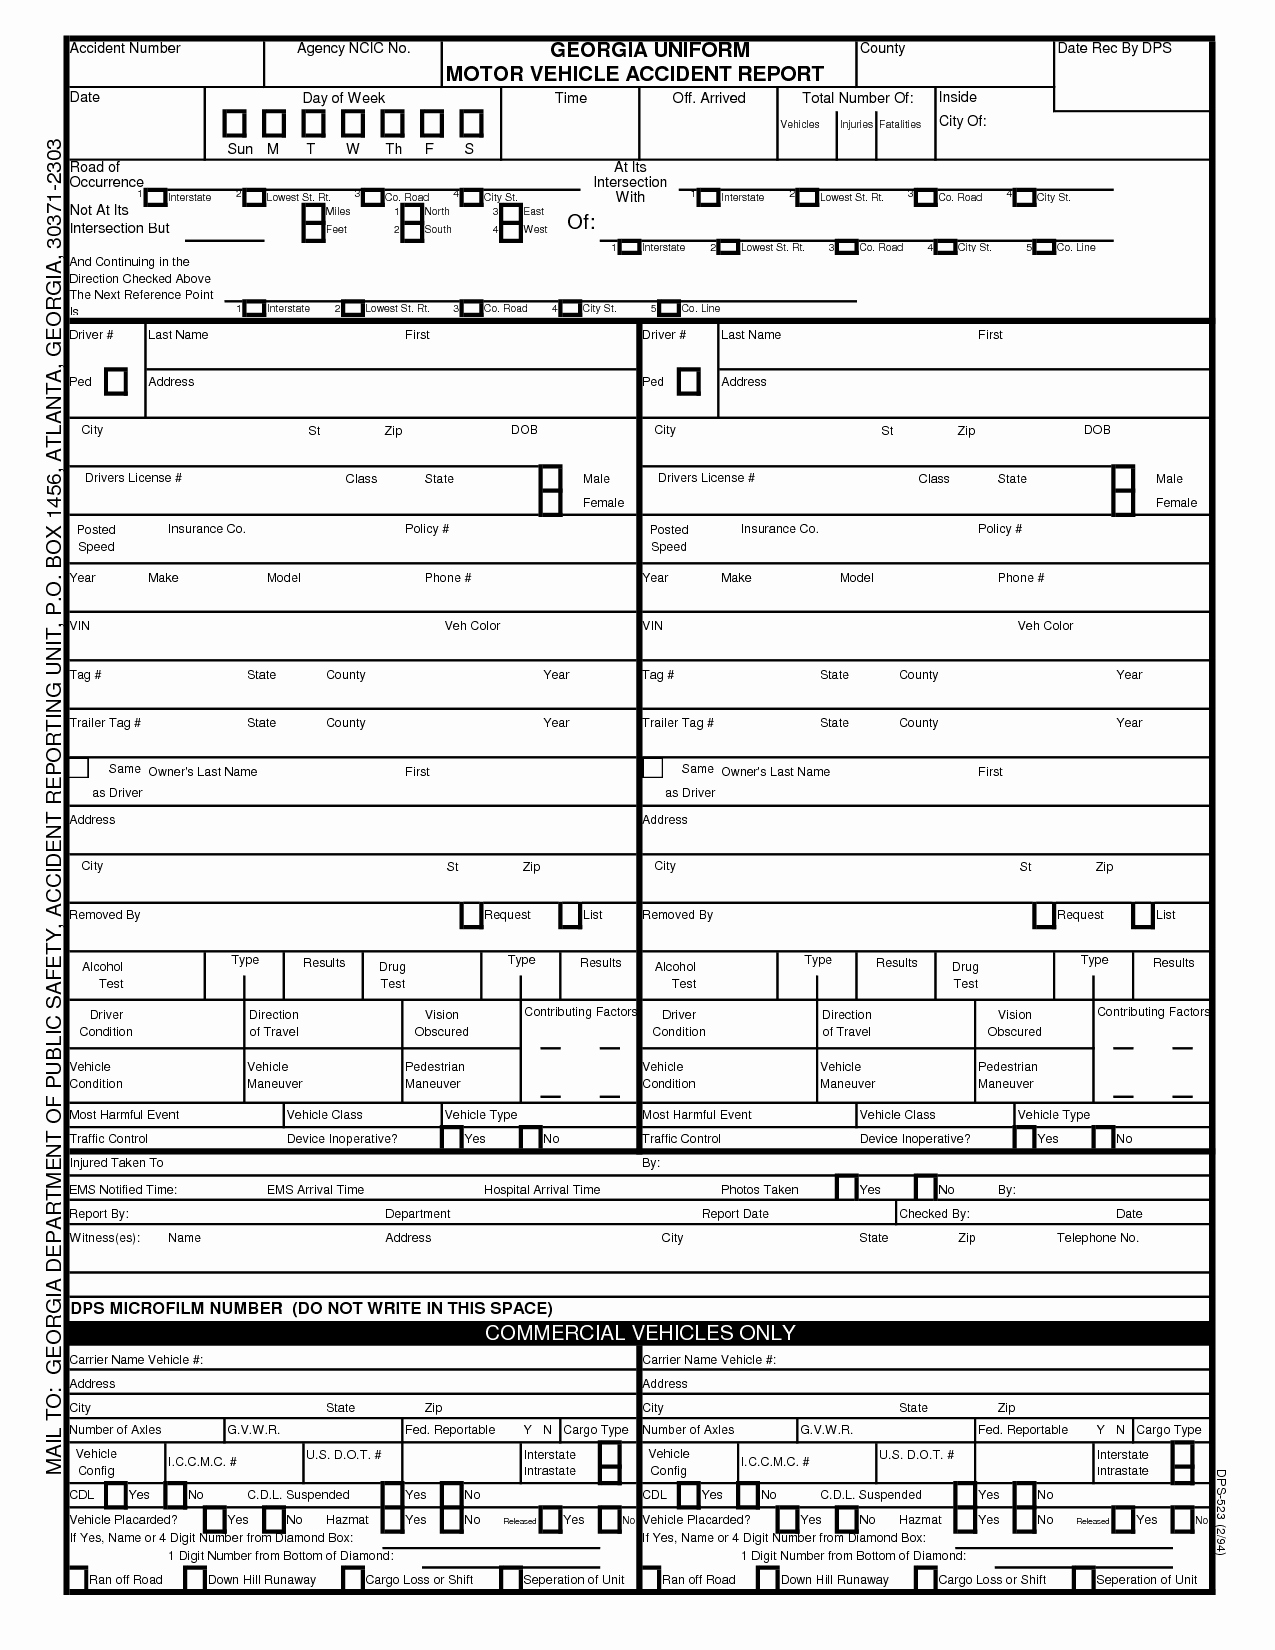 Vehicle Accident Report form Best Of Tario Motor Vehicle Accident Report Impremedia